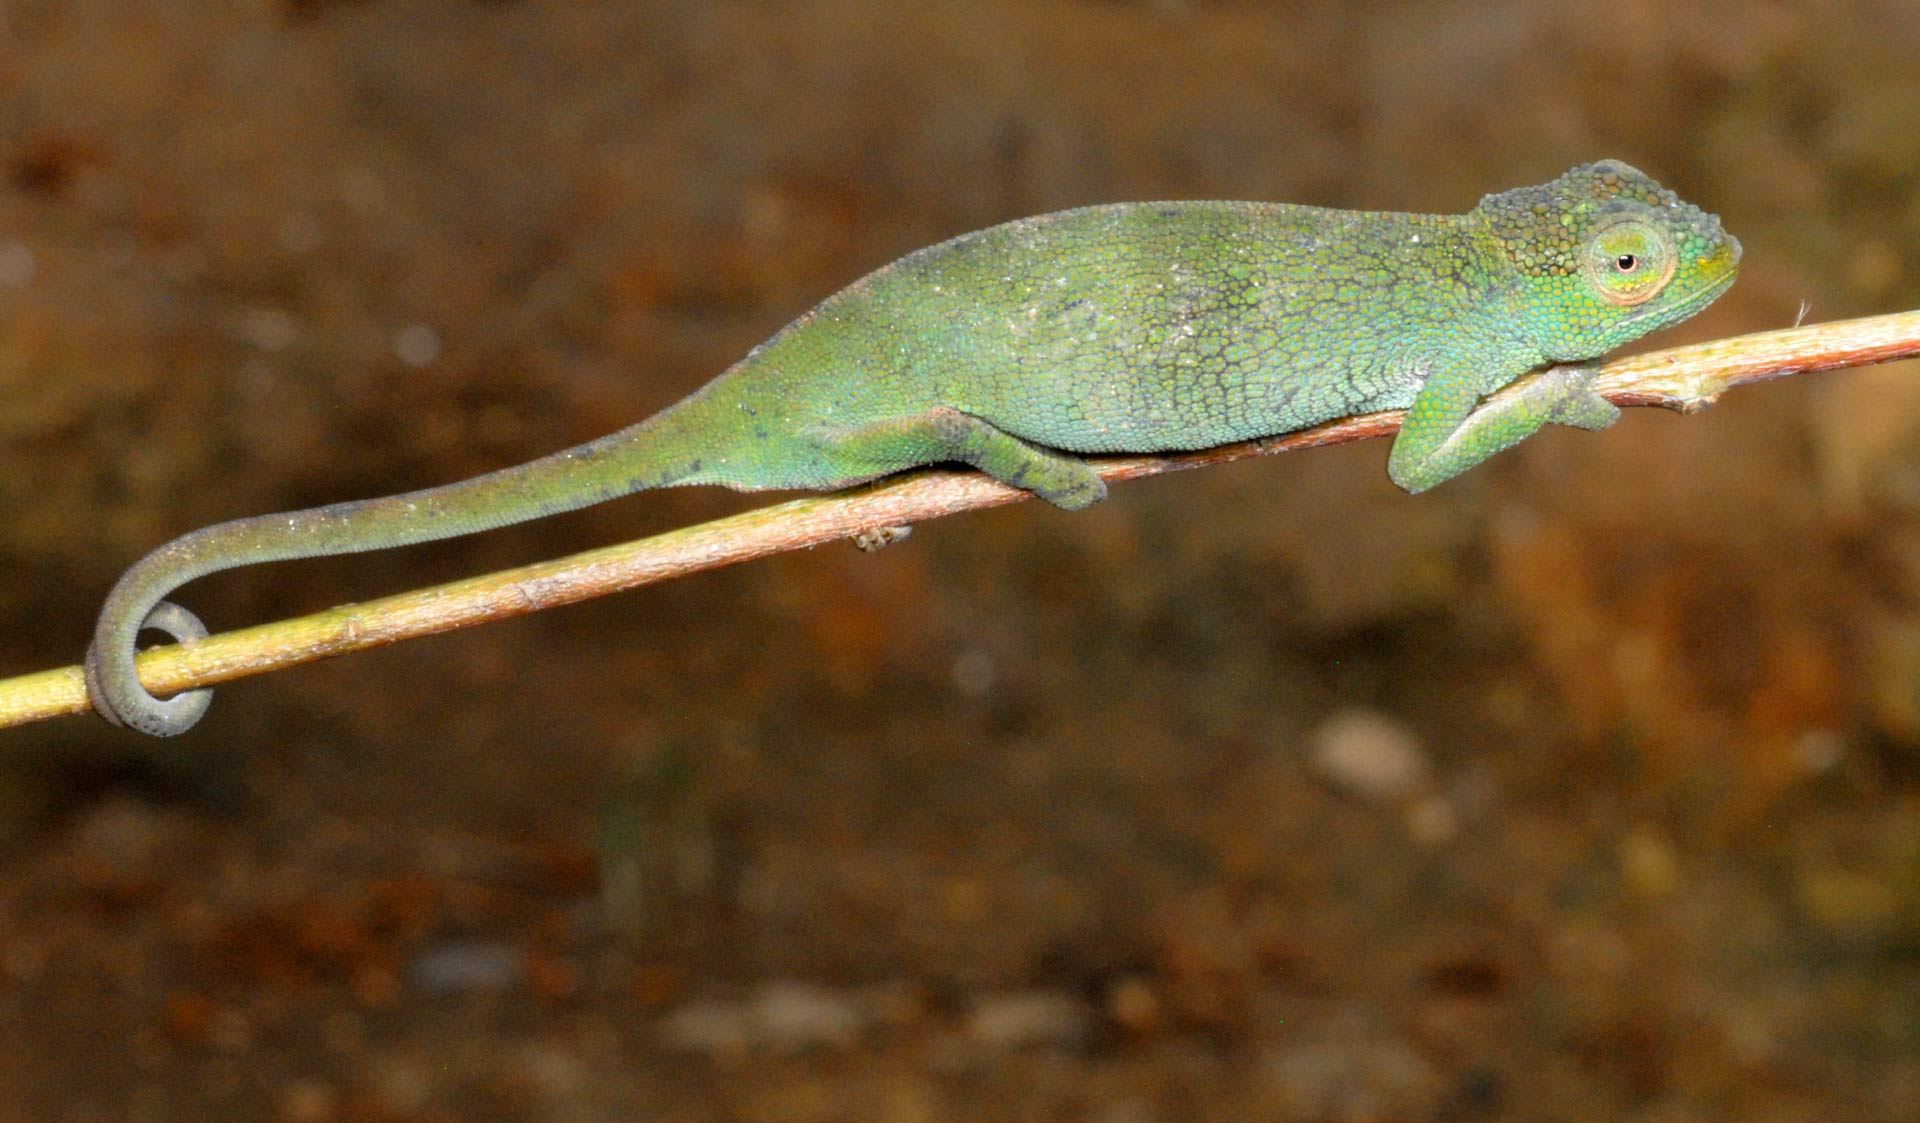 Three new species of chameleons, from Central Africa